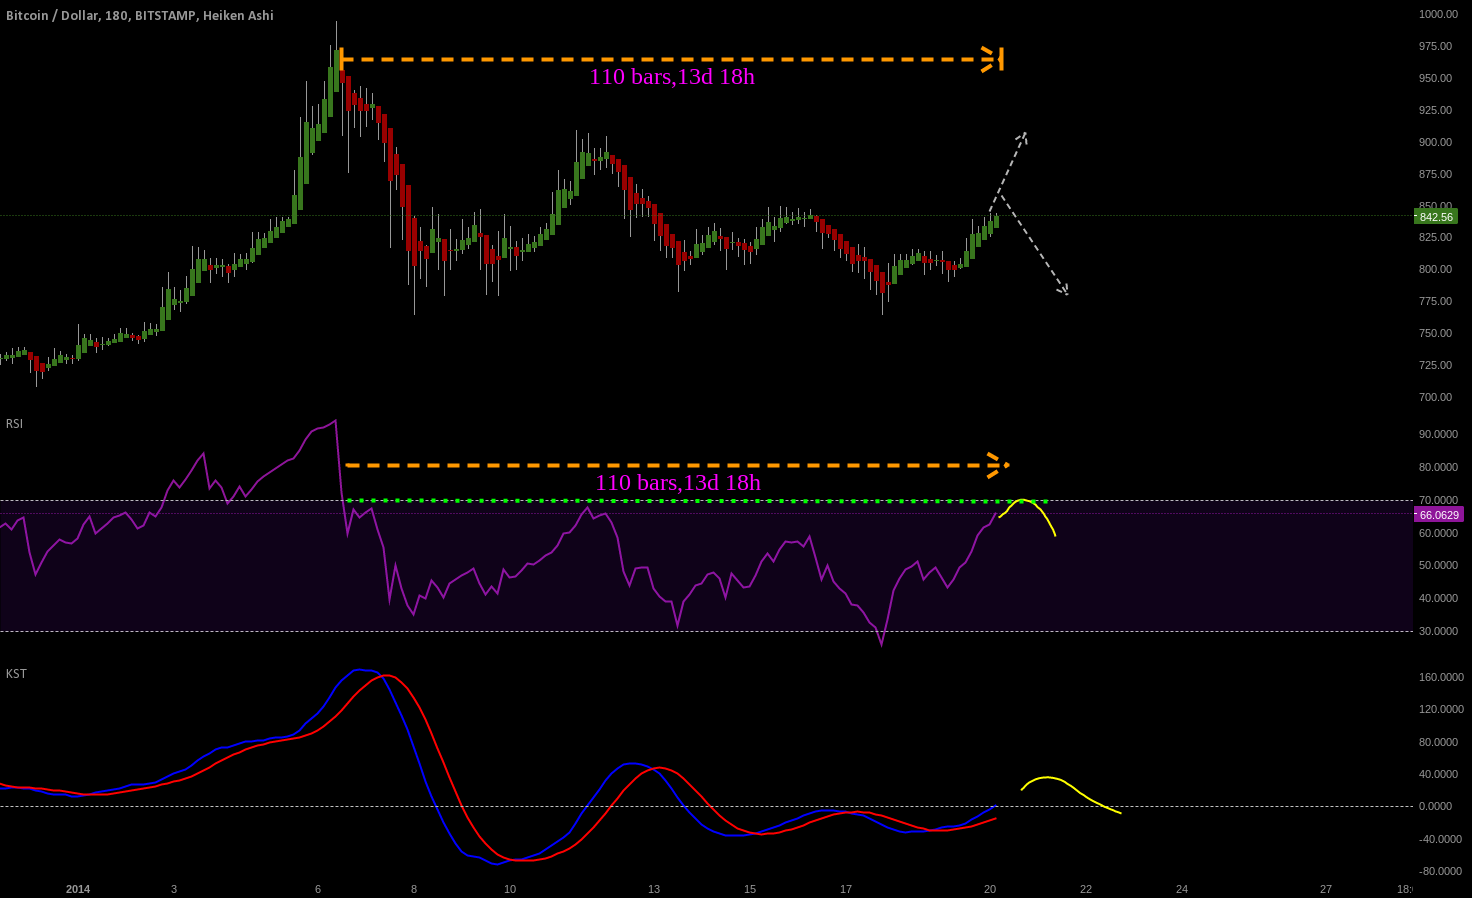 V2: RSI REACHING RESISTANCE AREAS